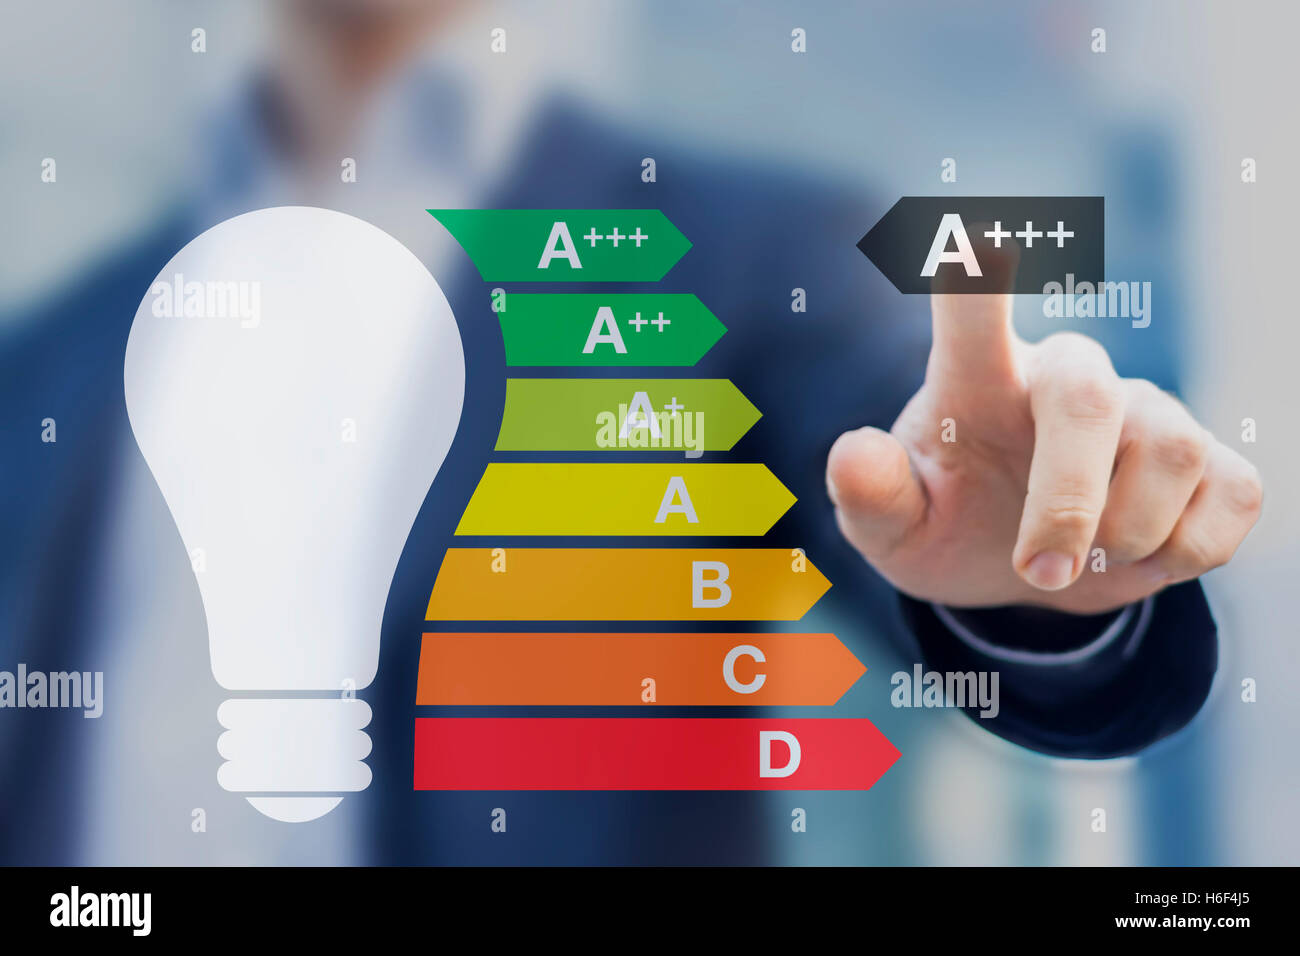 Light bulb with the best performance class a+++ displayed on the European energy efficiency label - Stock Image